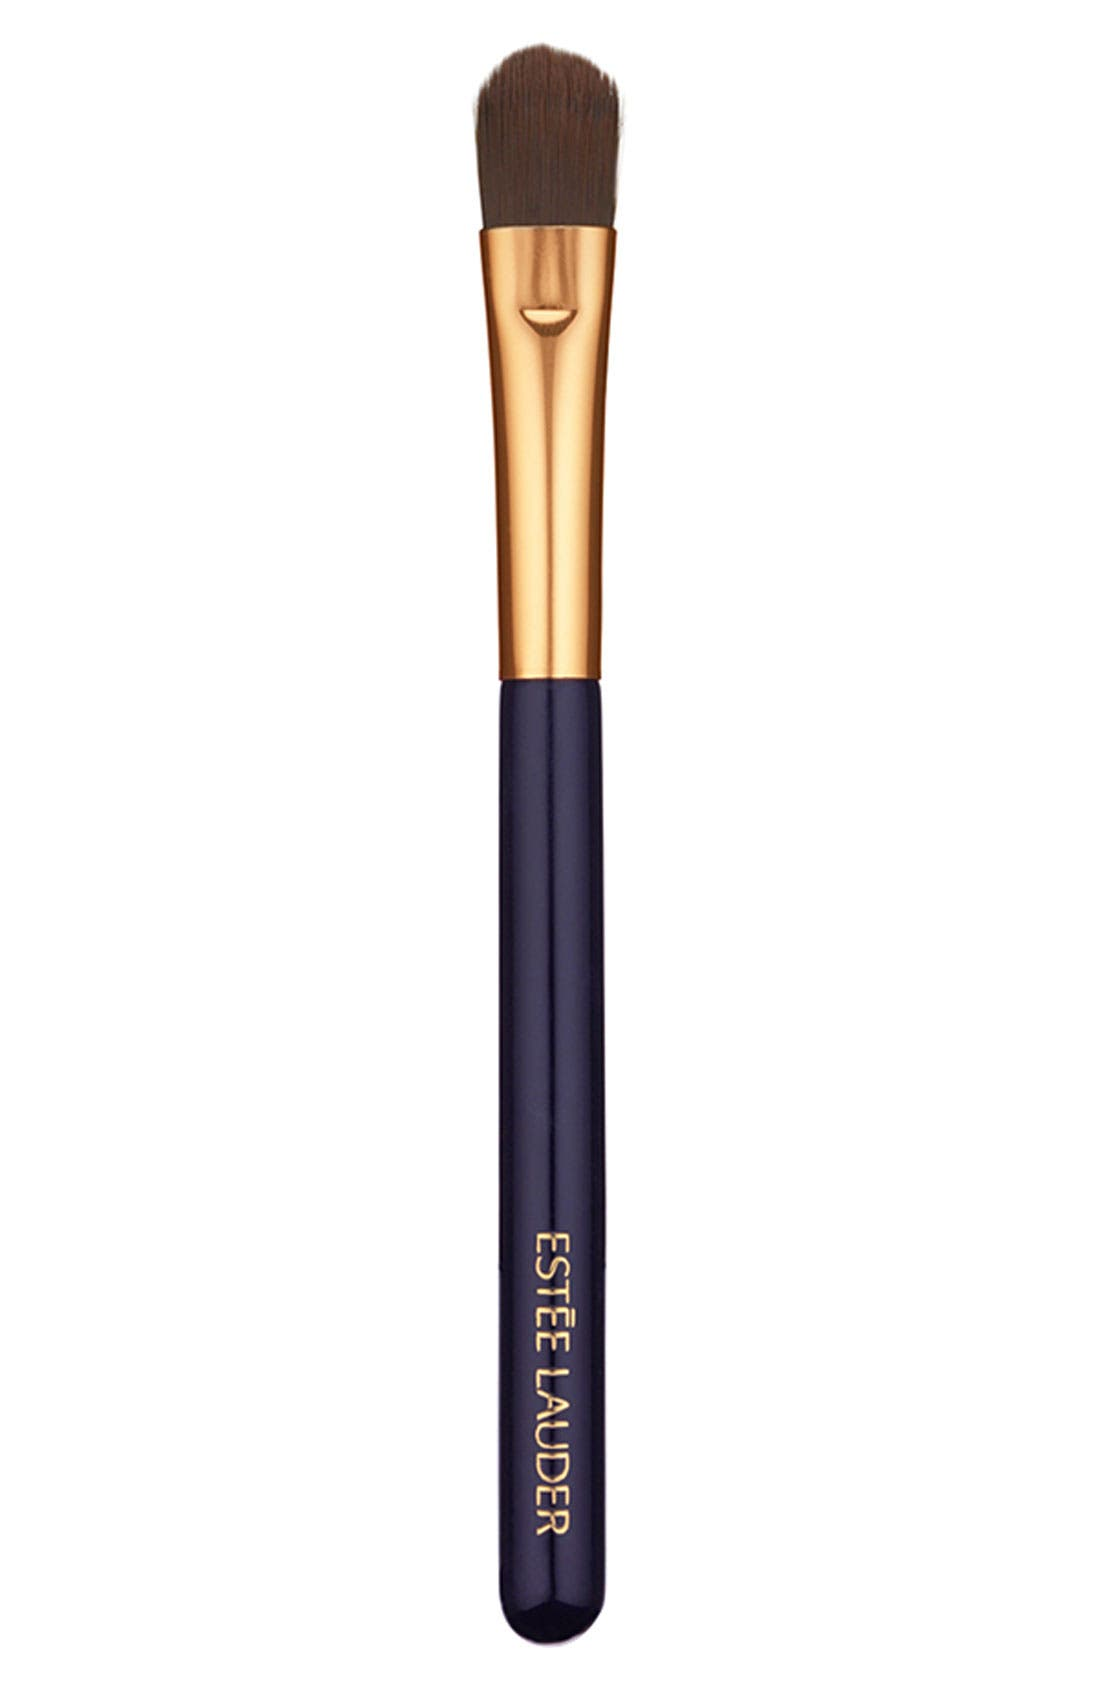 Concealer Brush,                             Main thumbnail 1, color,                             NO COLOR